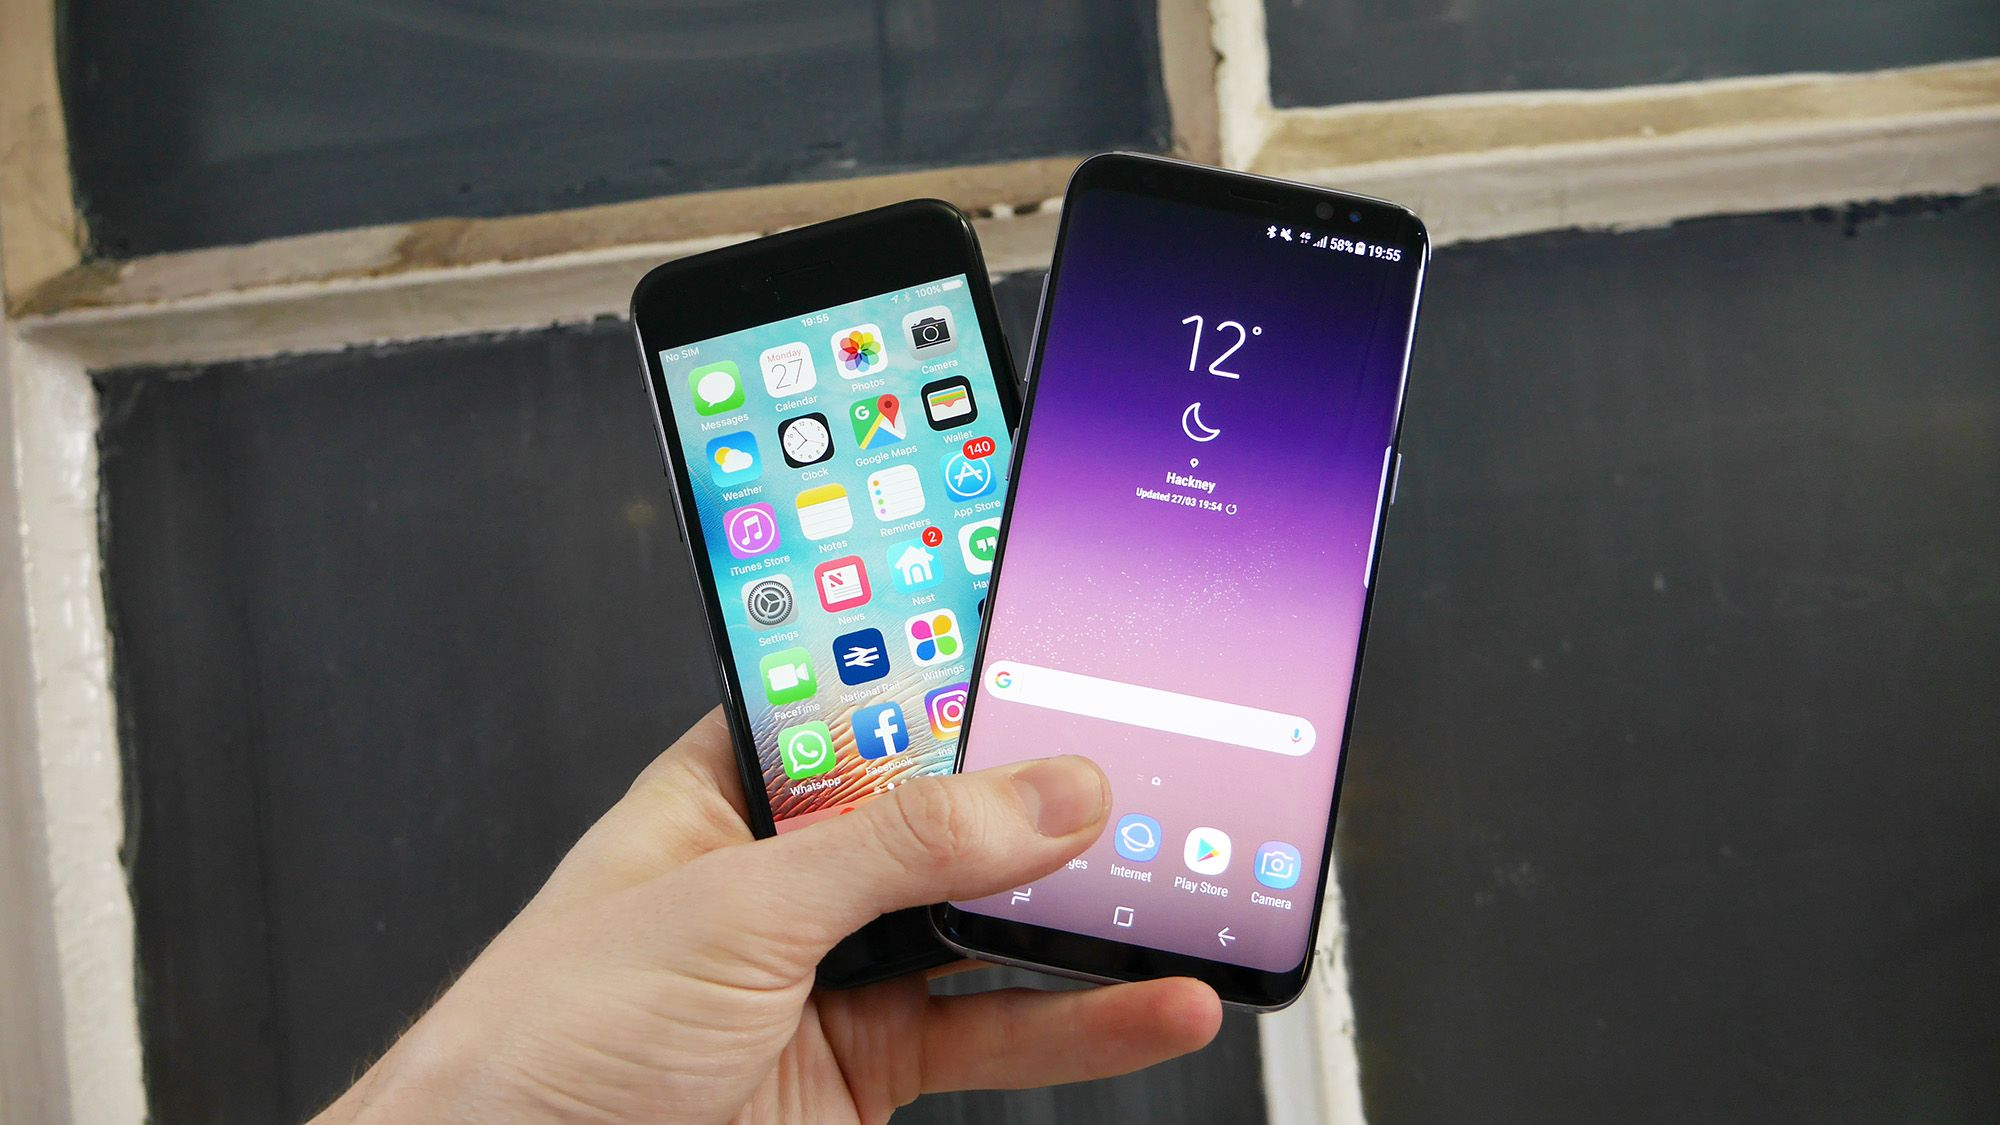 Iphone 6s vs samsung s8